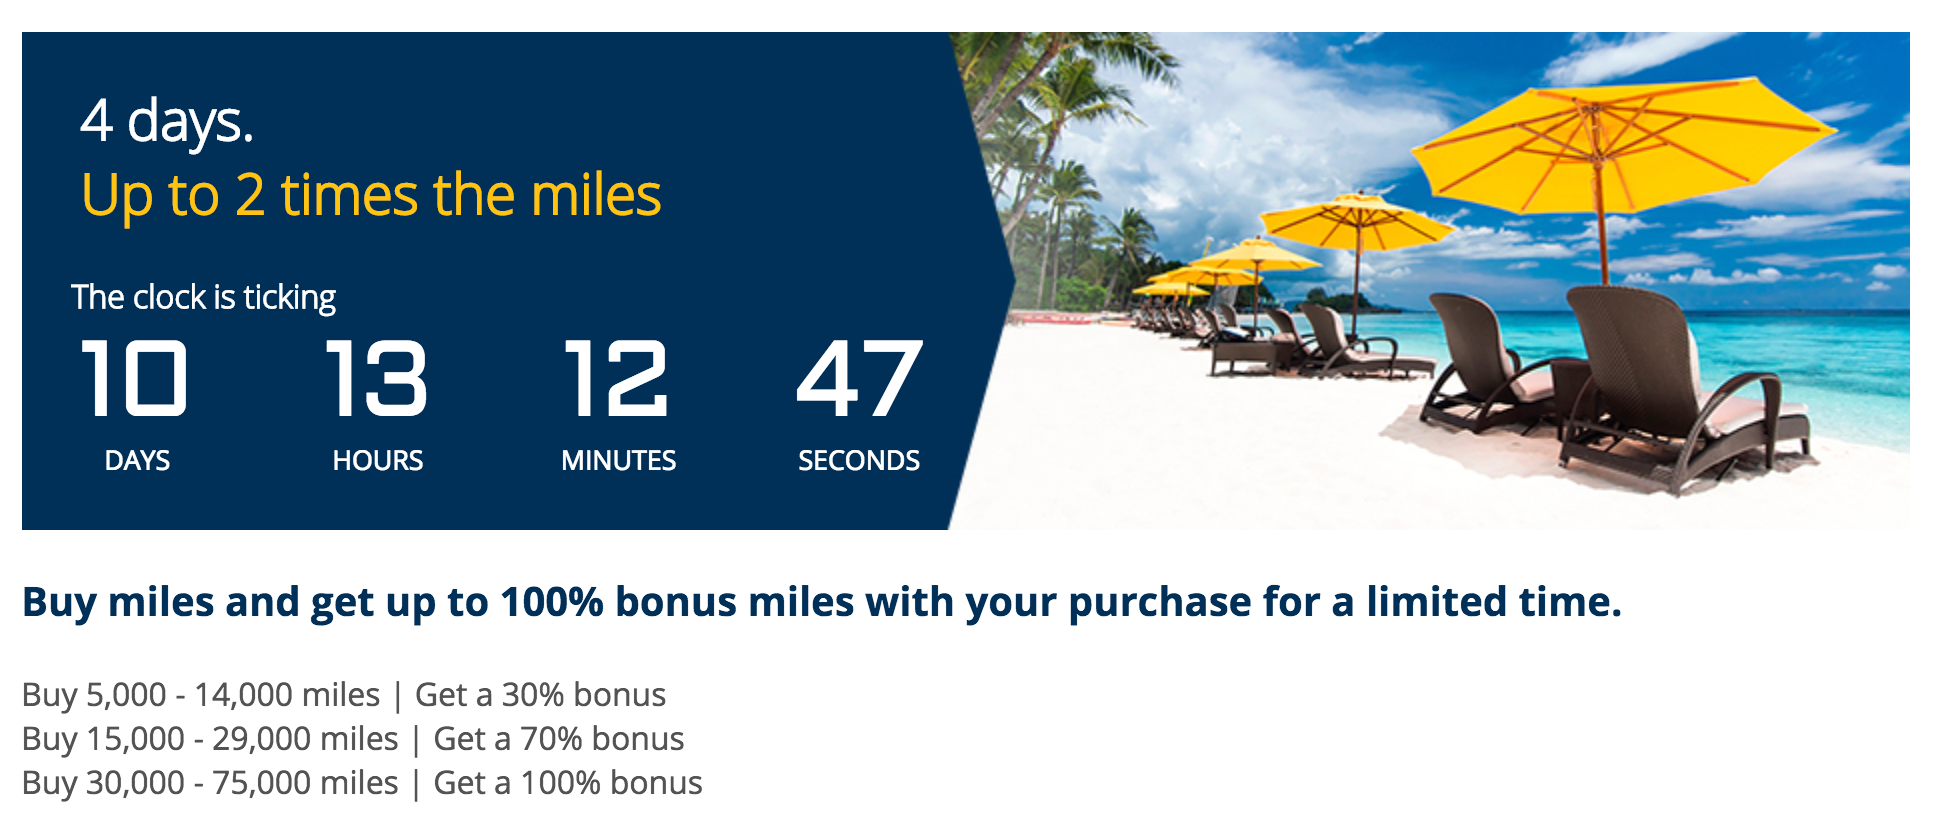 Purchase United Miles - July 2018 Promotion